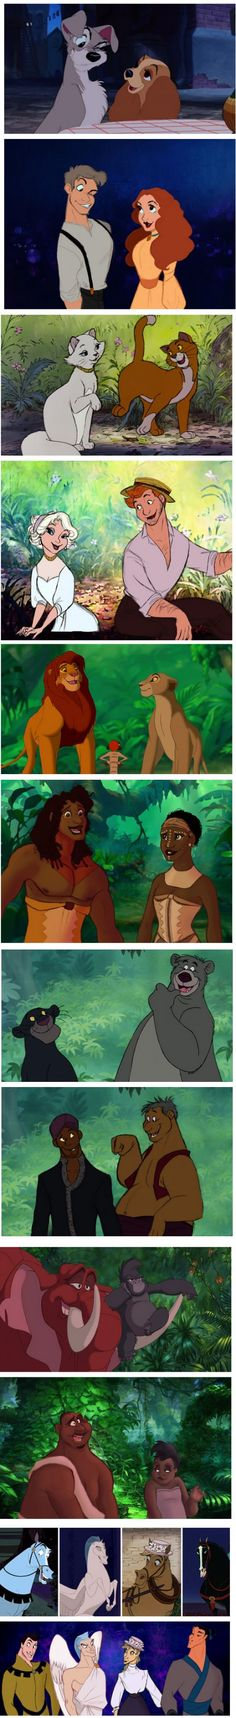 Disney animals and their human form (By Alaina Bastian)